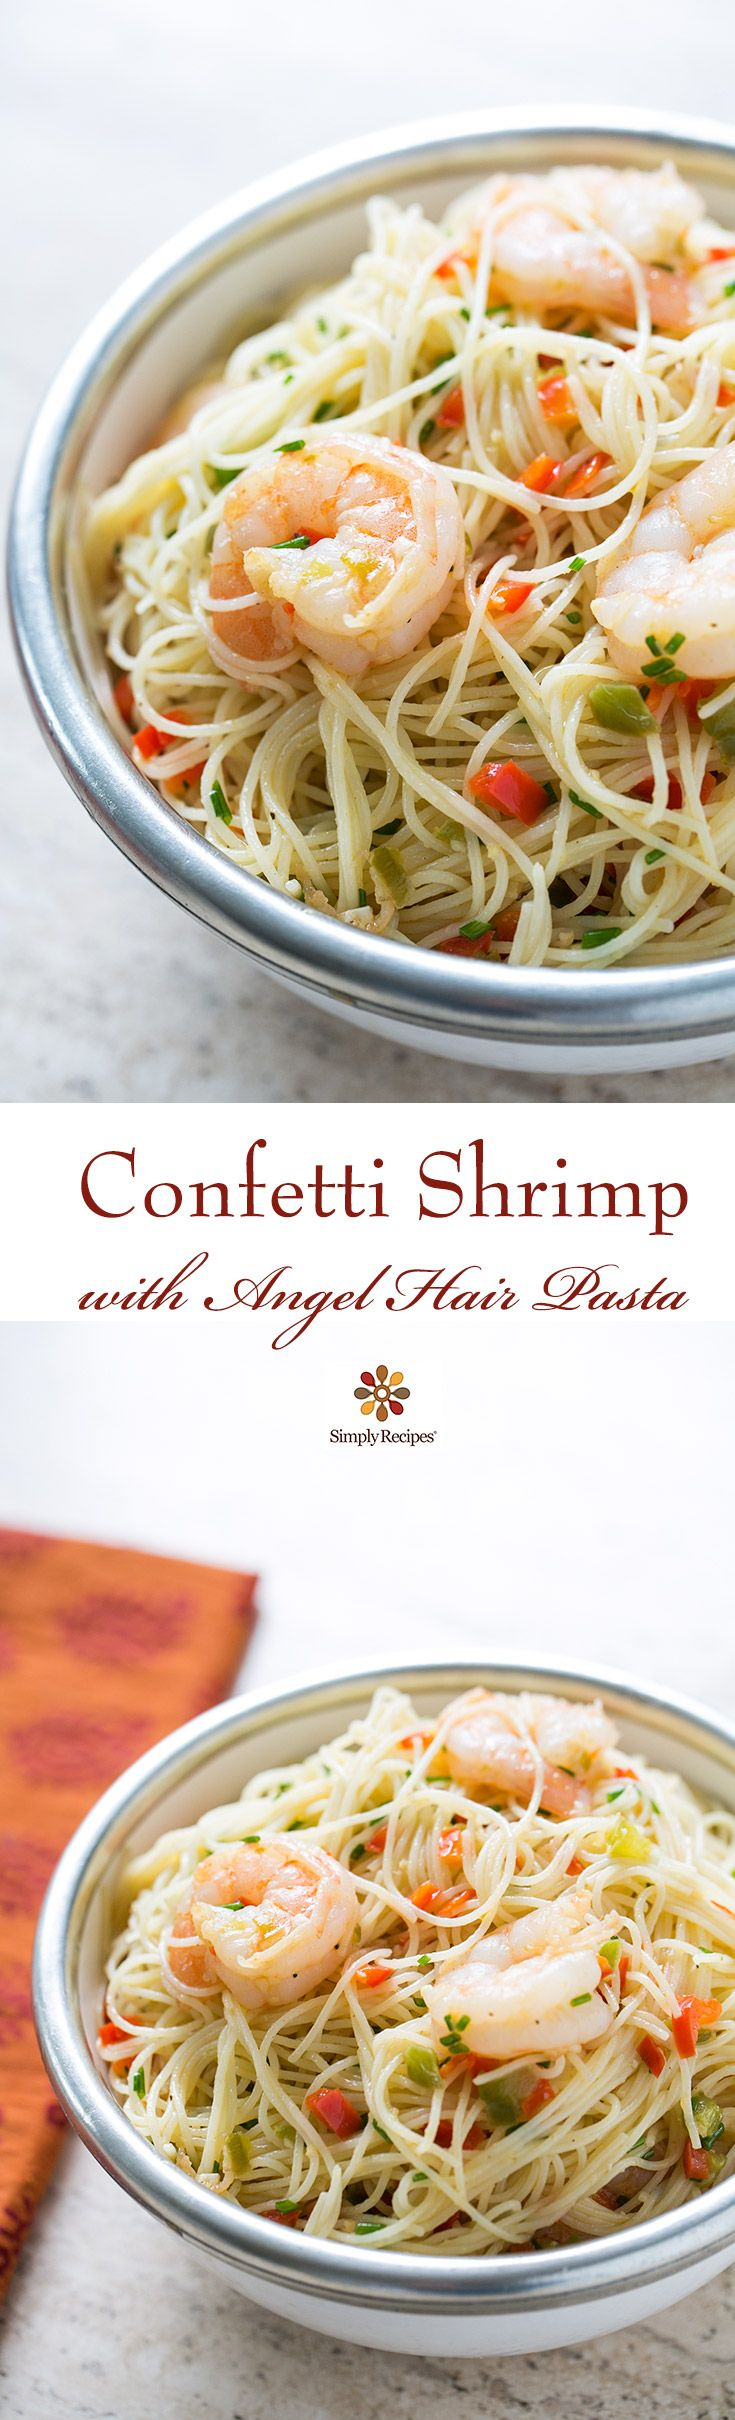 Easy! Shrimp sautéed in olive oil with ginger, garlic, and colorful red and green bell pepper, tossed with angel hair pasta. ~ SimplyRecipes.com